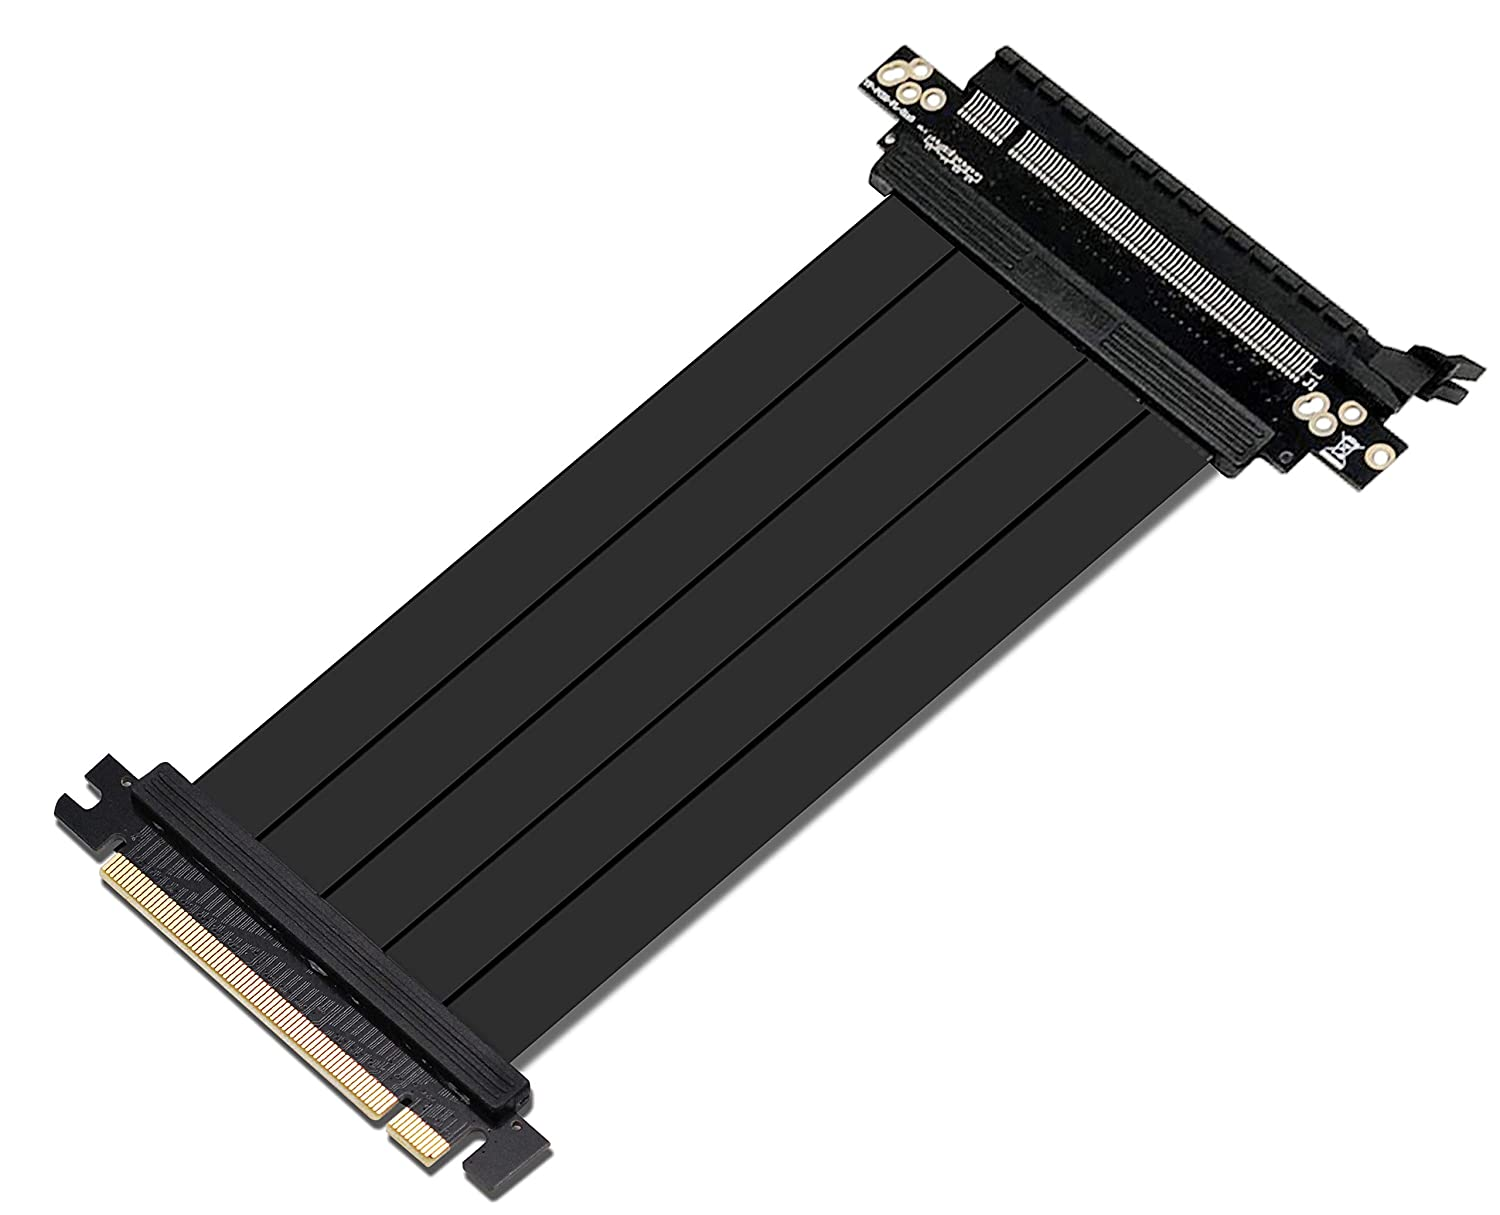 EZDIY-FAB All NEW PCI Express 16x Flexible Cable Card Extension Port Adapter High Speed Riser Card-25cm